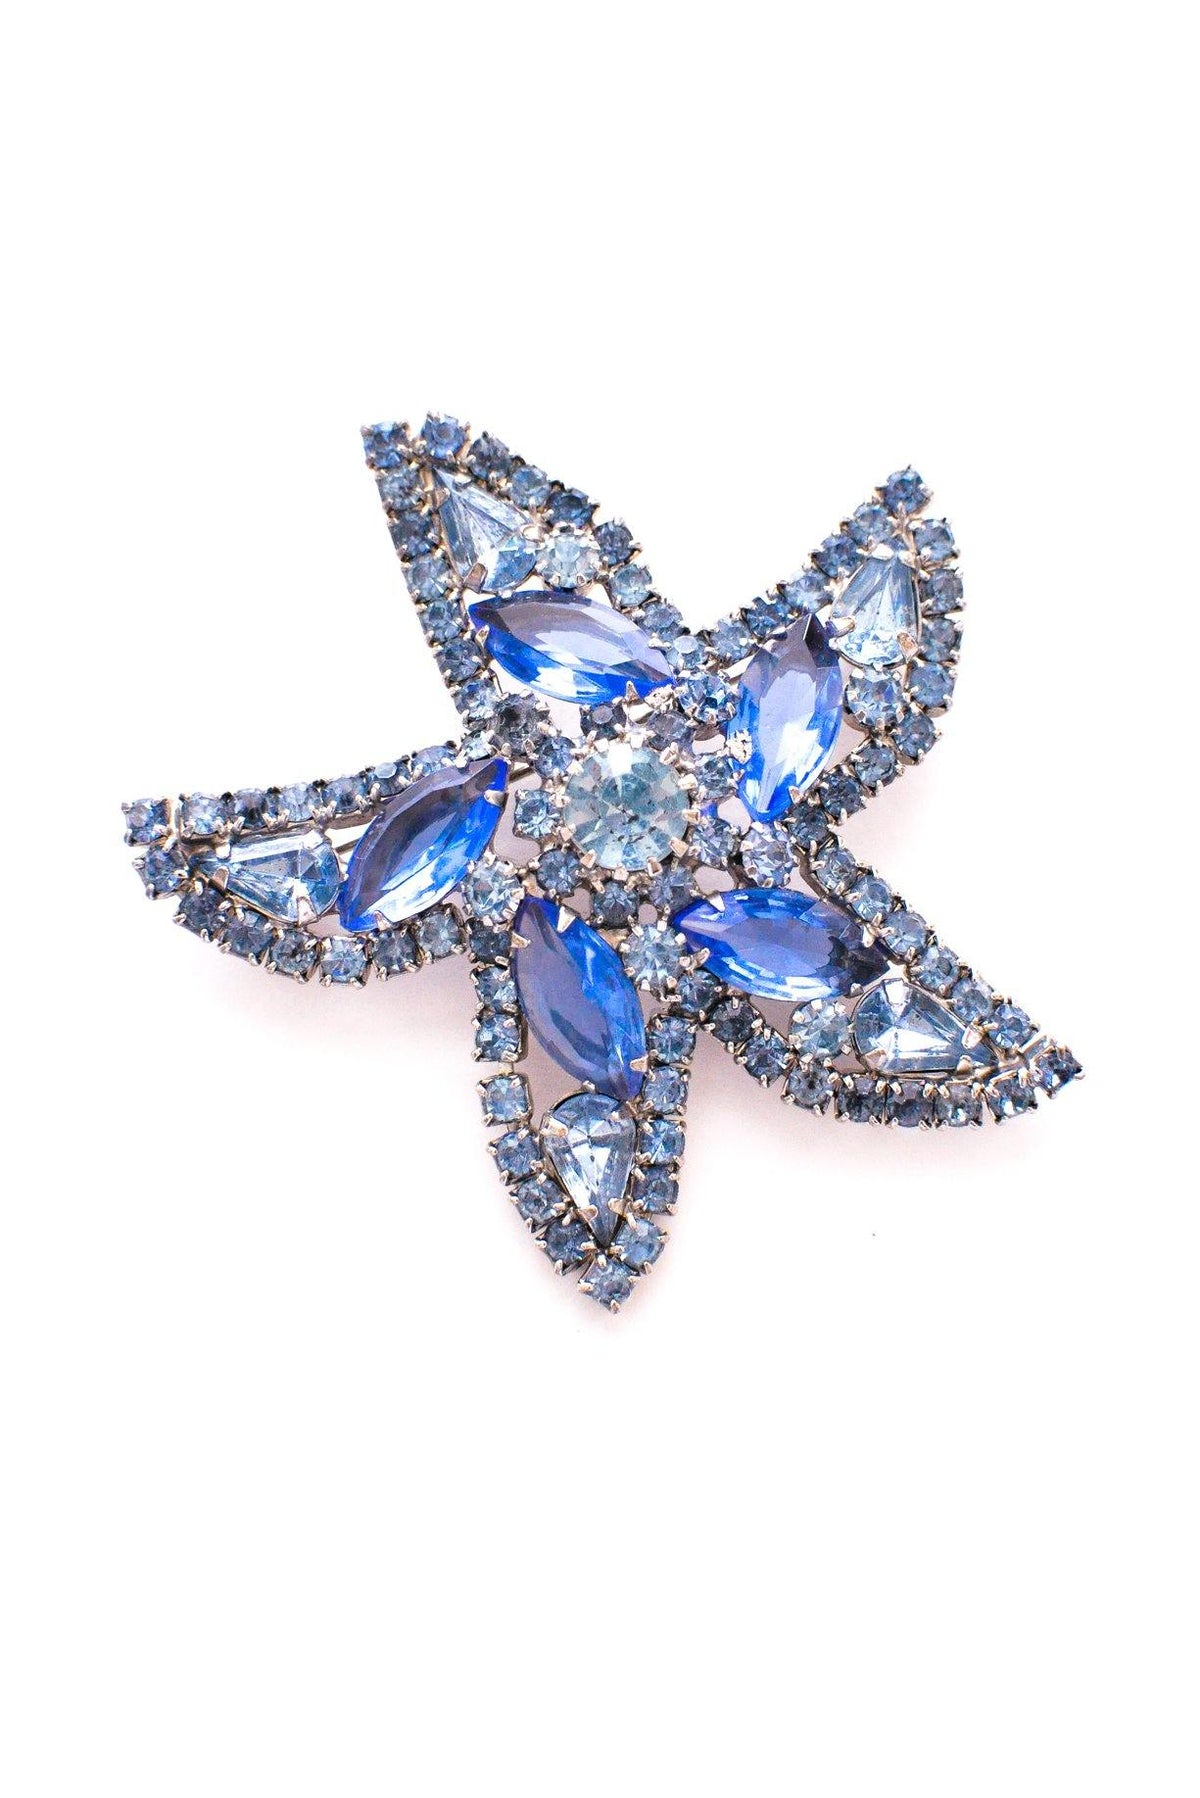 Vintage Weiss Blue Rhinestone Starfish Brooch from Sweet & Spark.